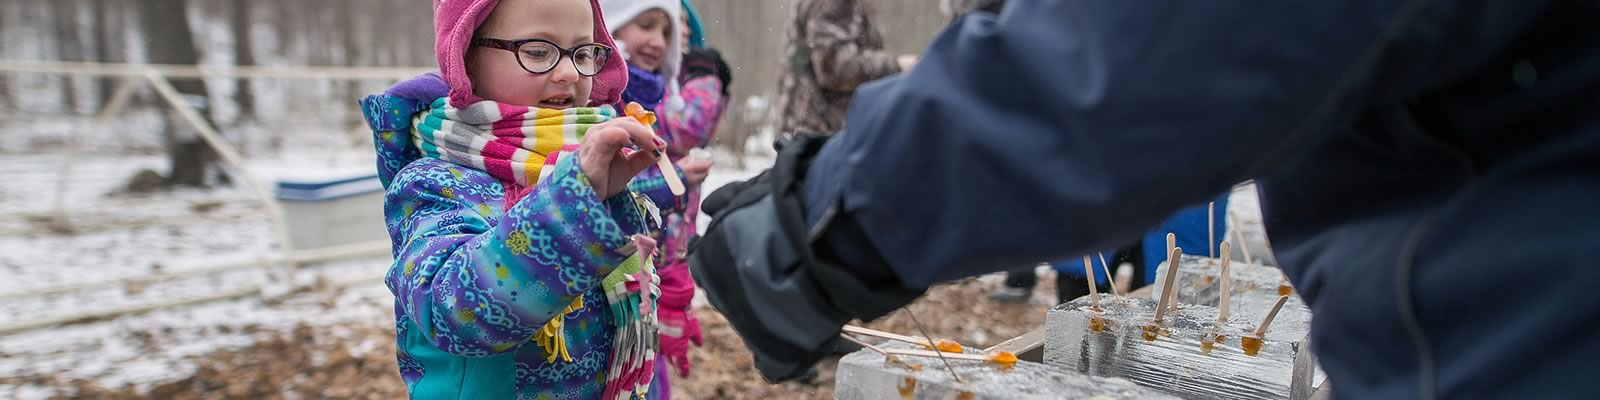 Youngsters sample maple candy at Island Lake last spring. Photo by James MacDonald.